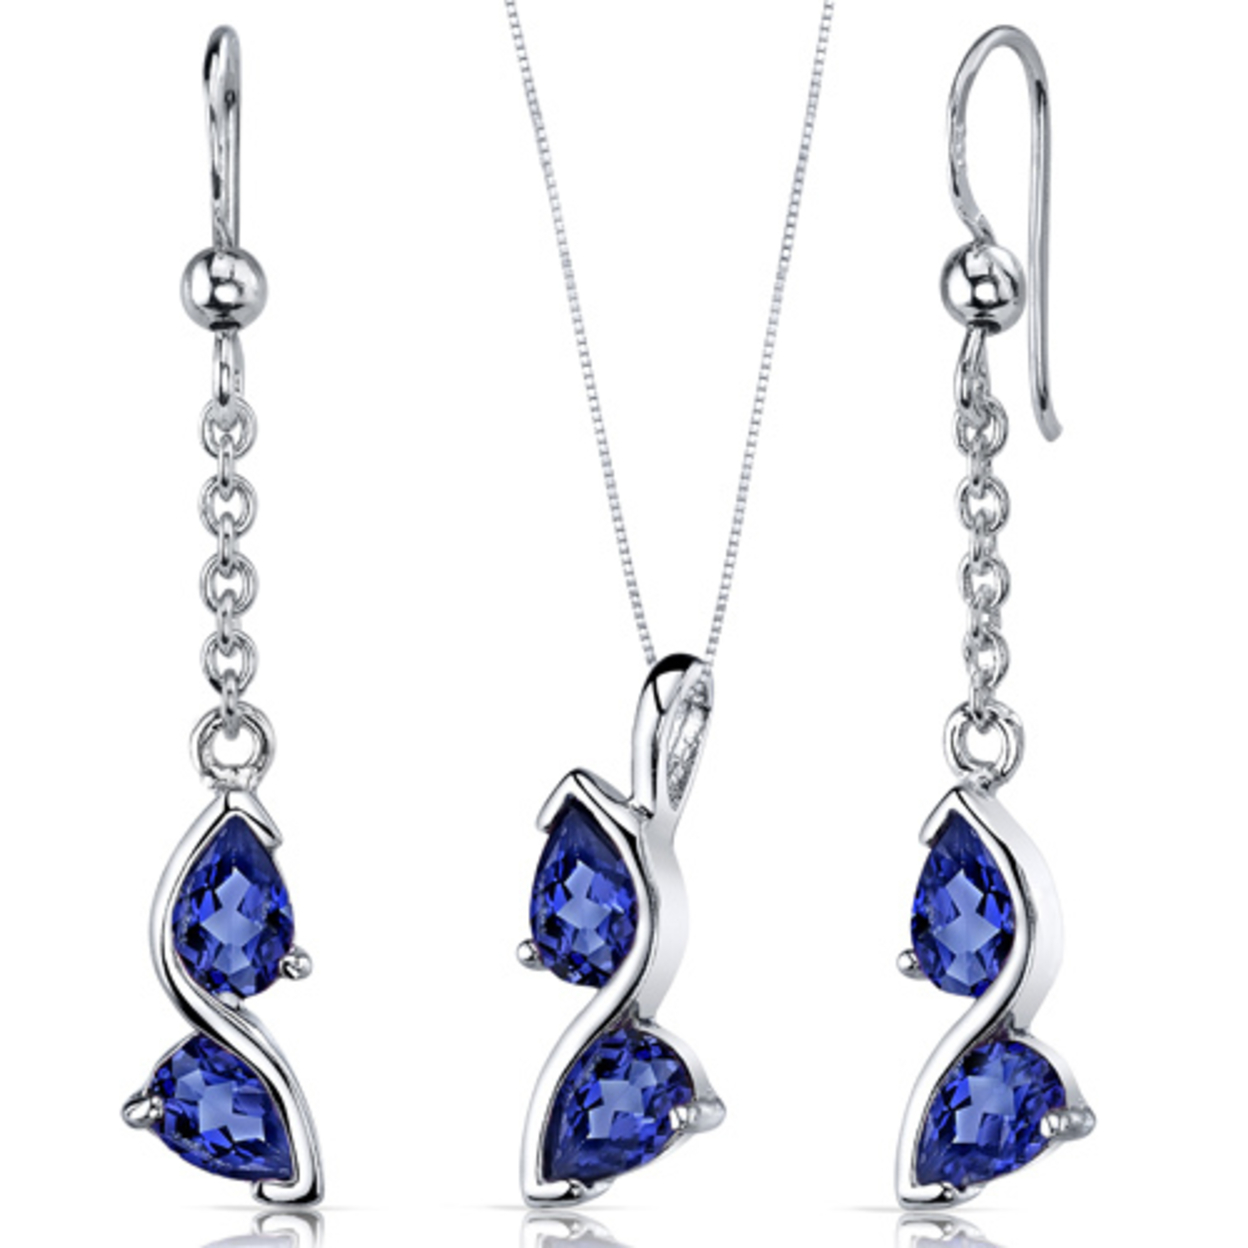 Artistic 3.00 Carats Pear Shape Sterling Silver Sapphire Pendant Earrings Set Style Ss3710